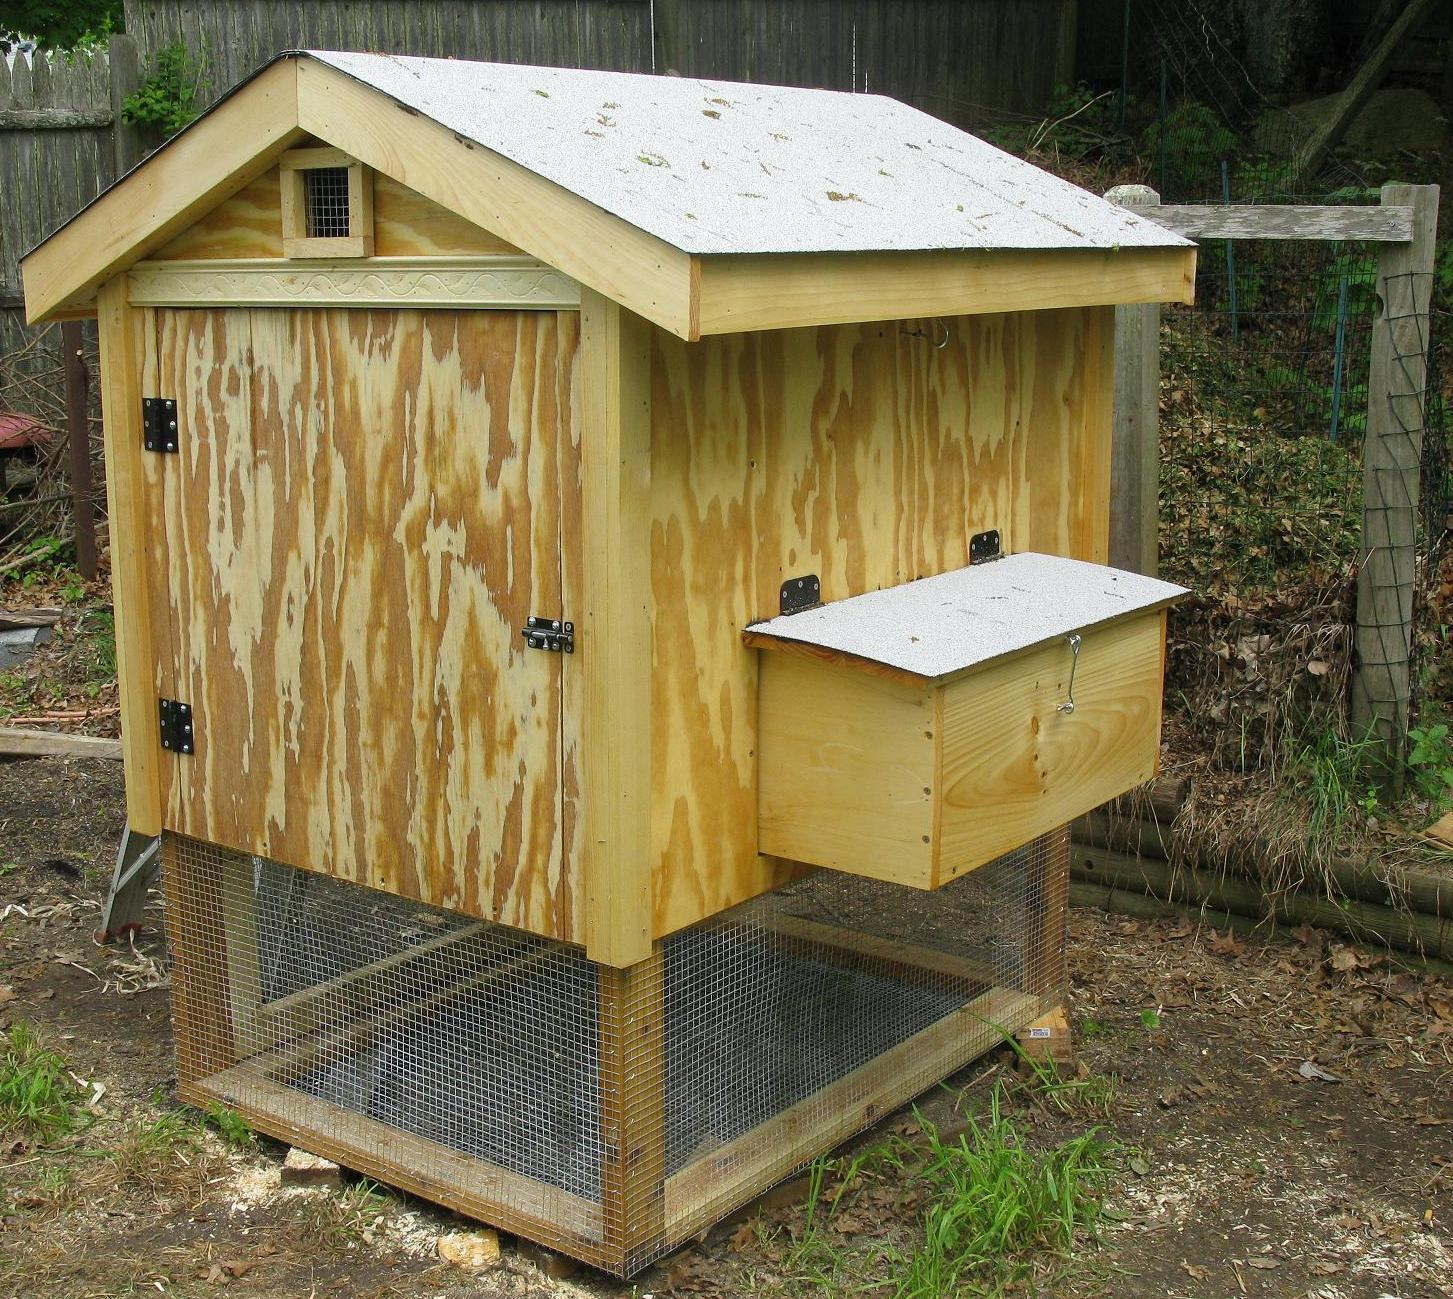 just another small coop but with dimensions backyard chickens